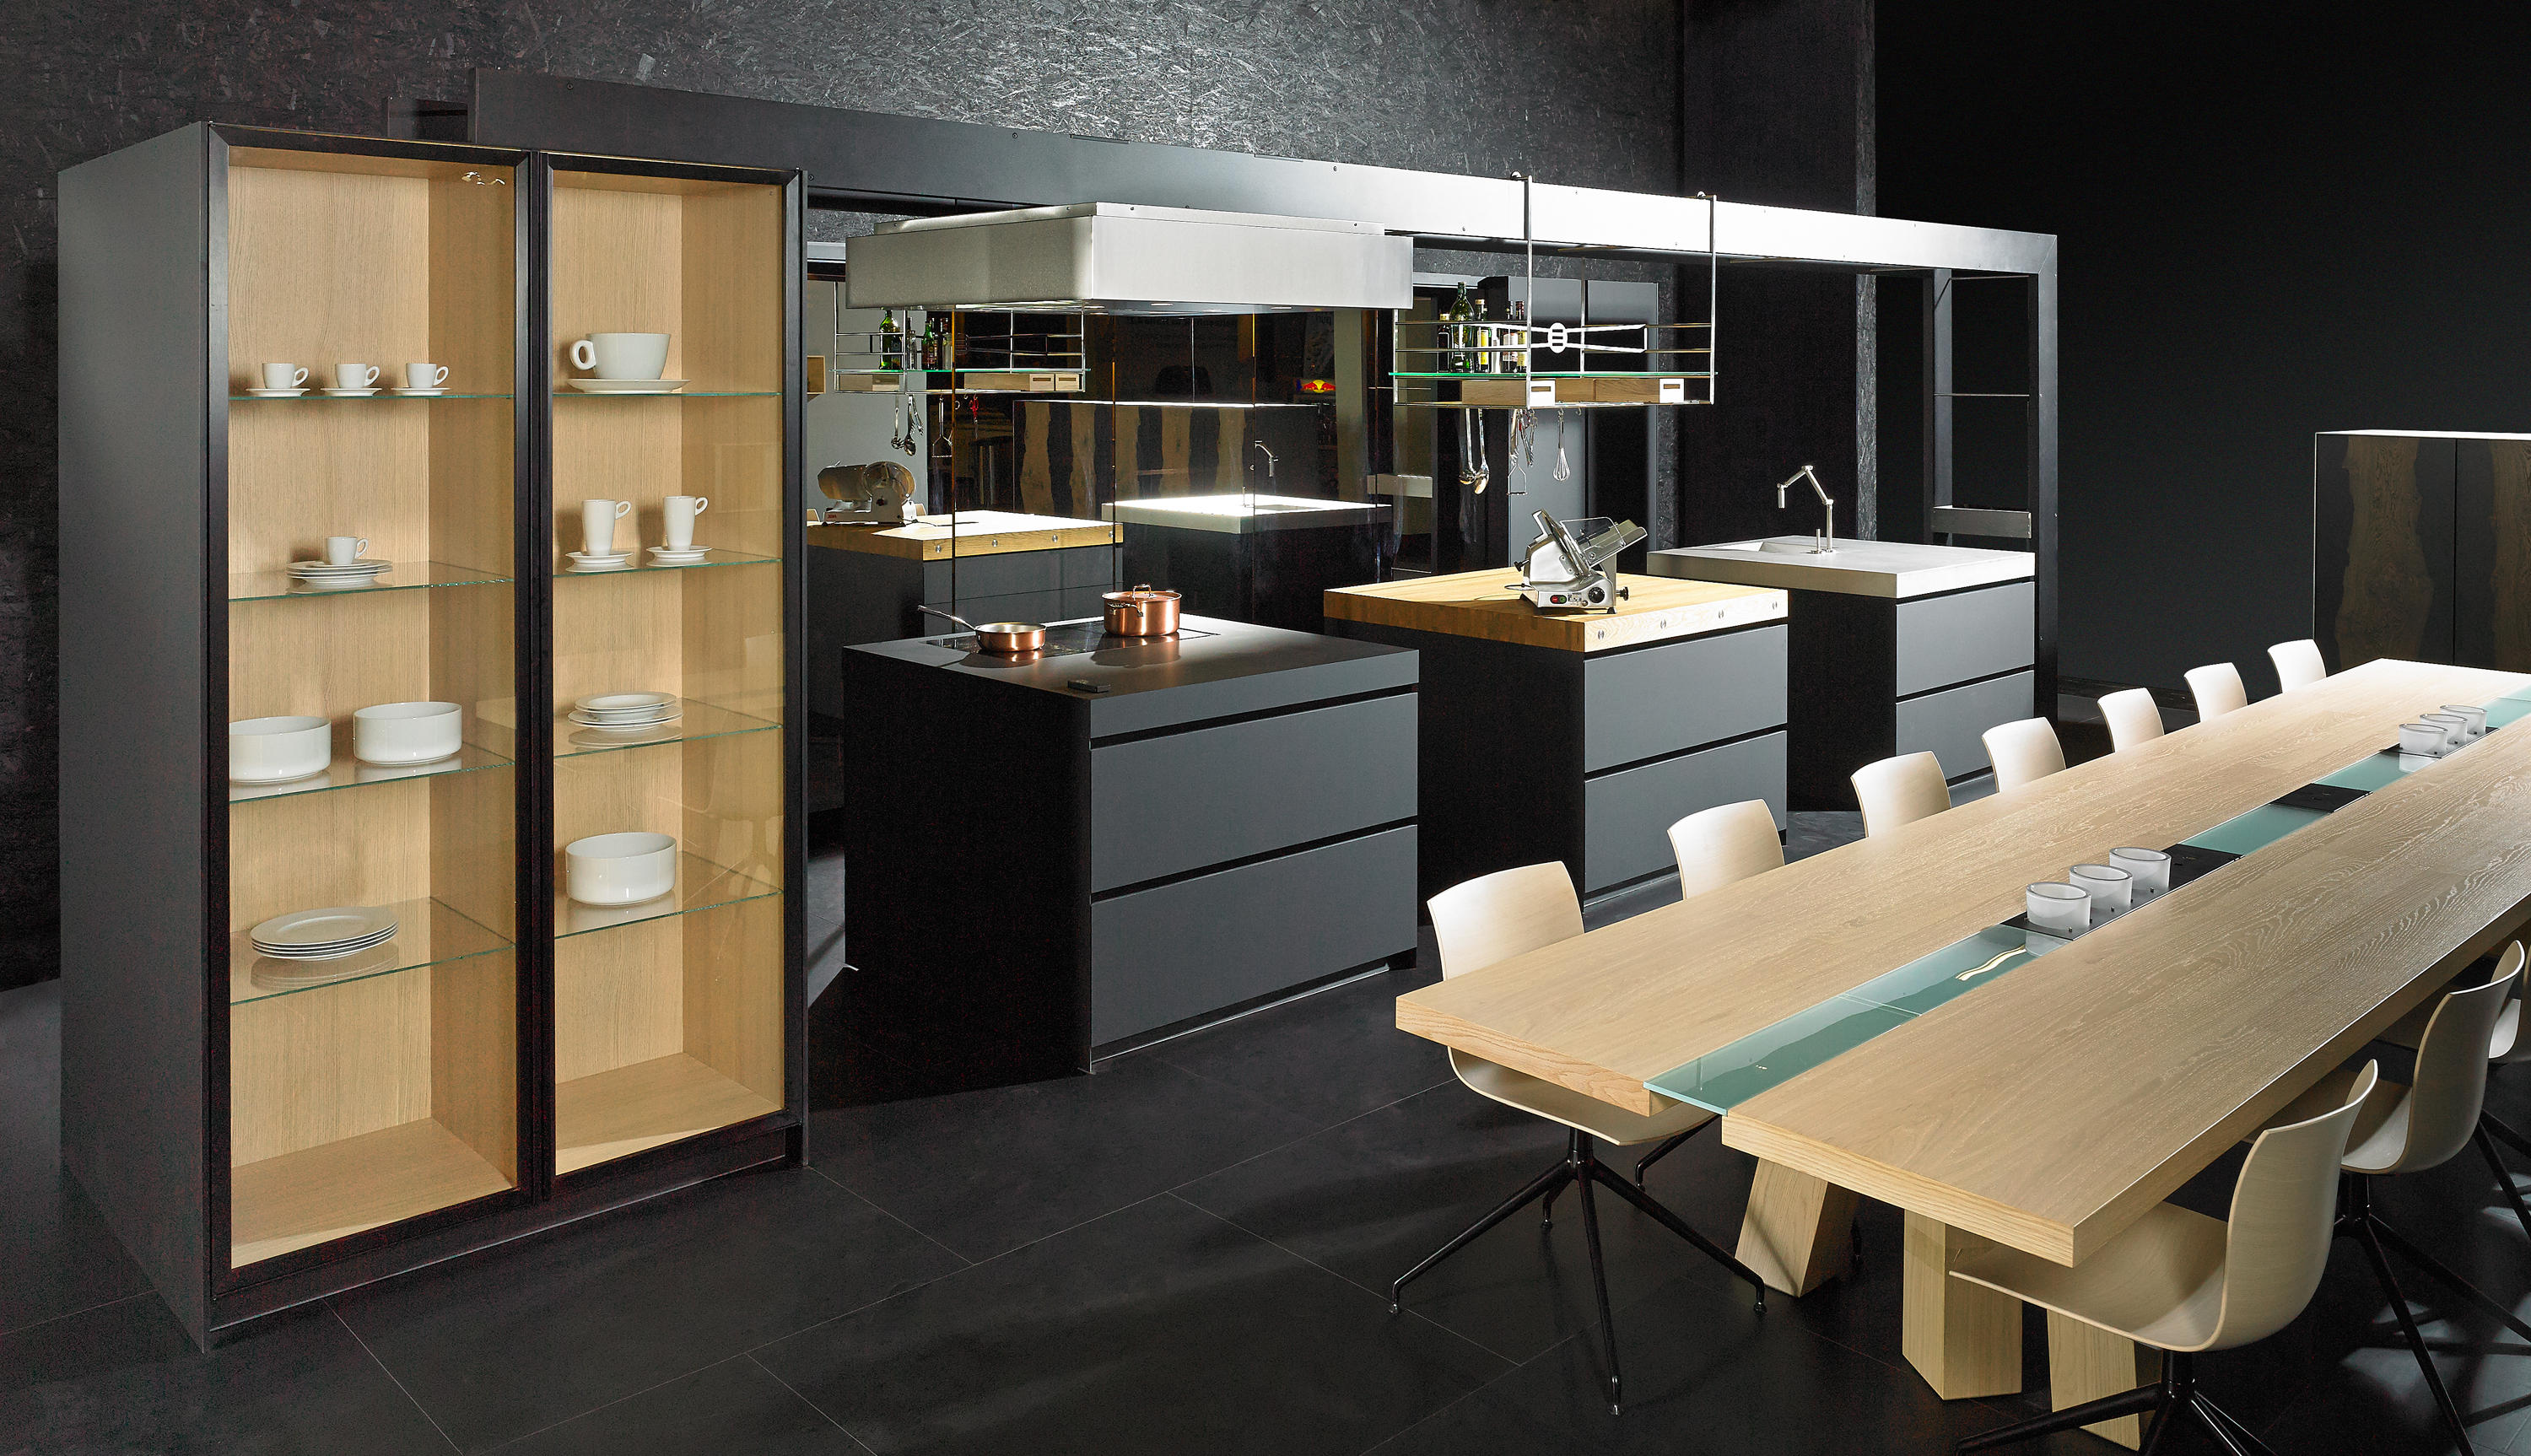 work s fitted kitchens from eggersmann architonic. Black Bedroom Furniture Sets. Home Design Ideas